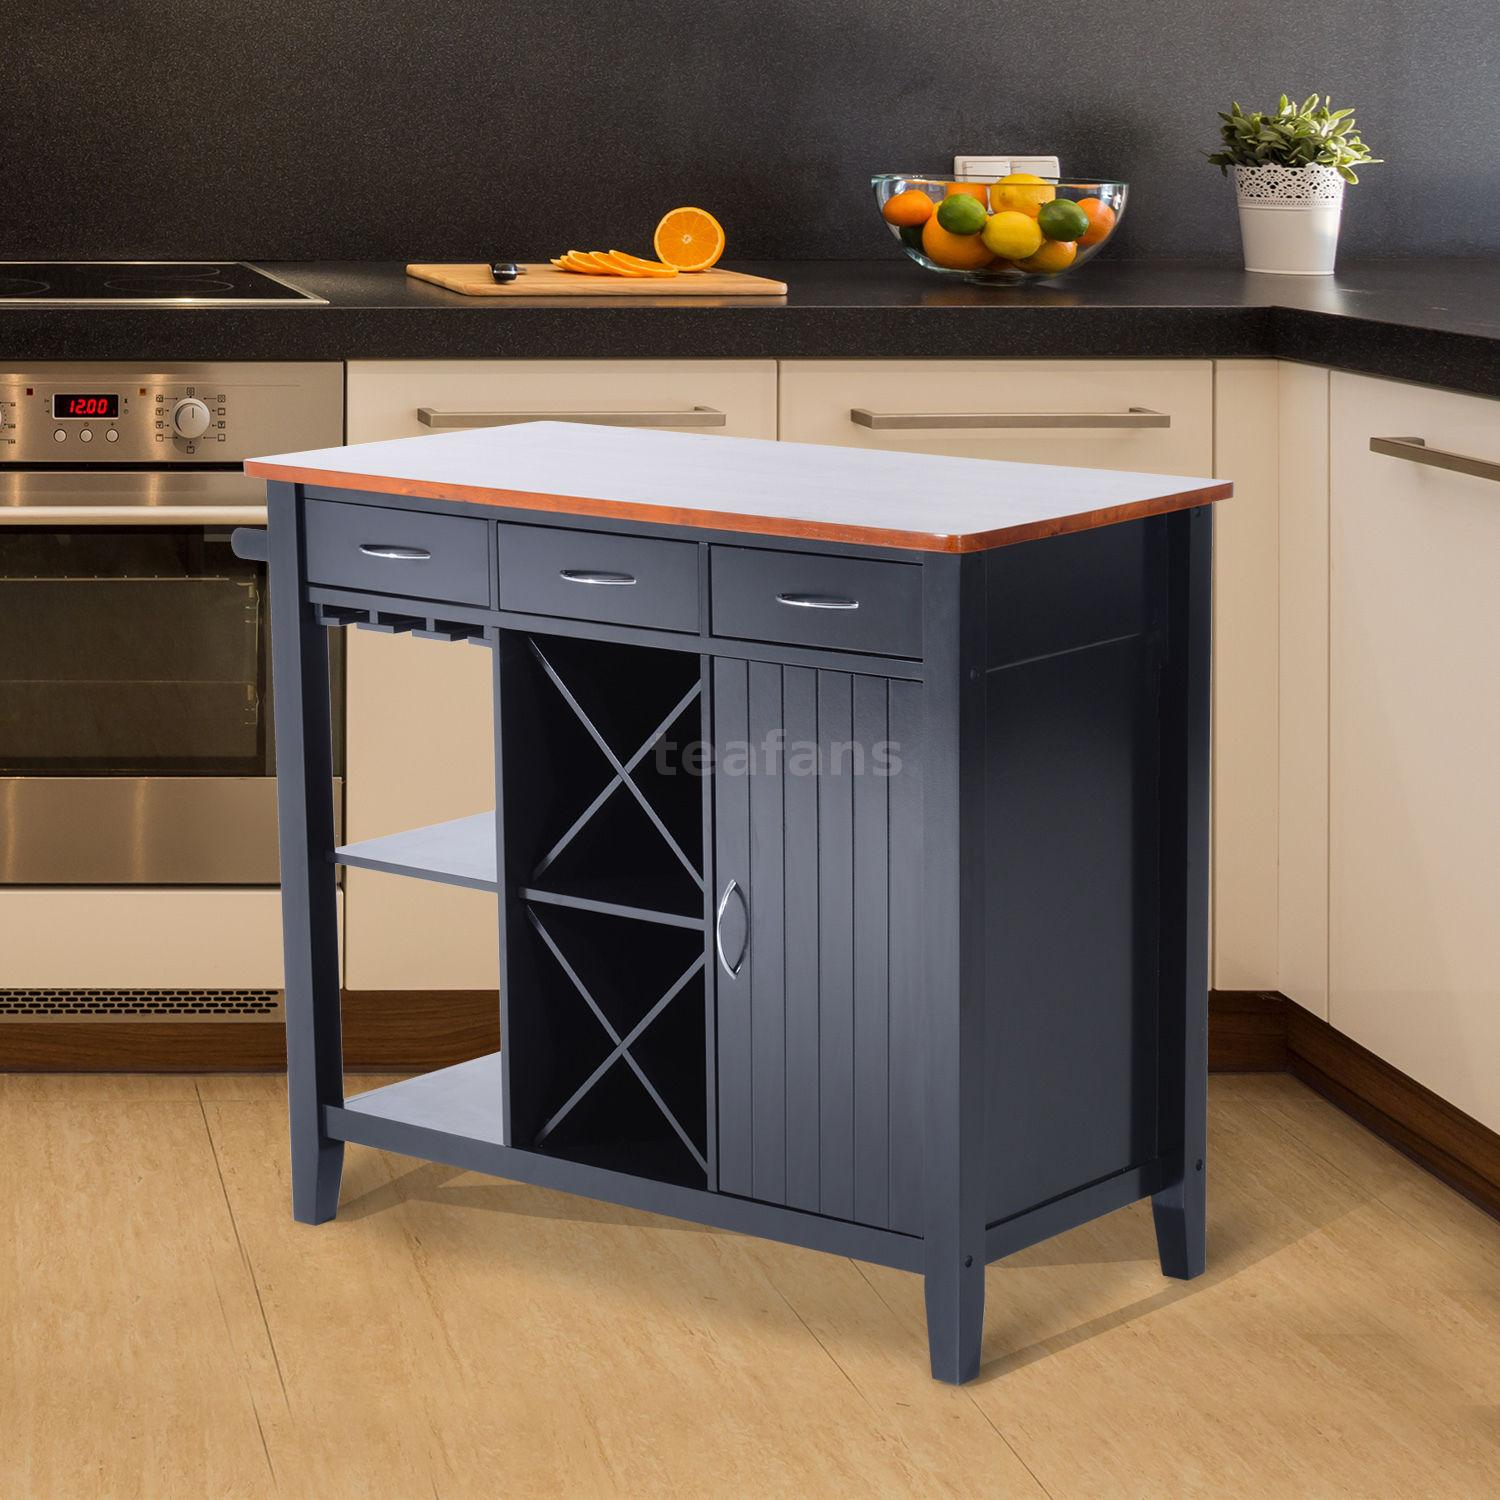 Organize Both With A Stylish And Versatile Wooden Kitchen Island